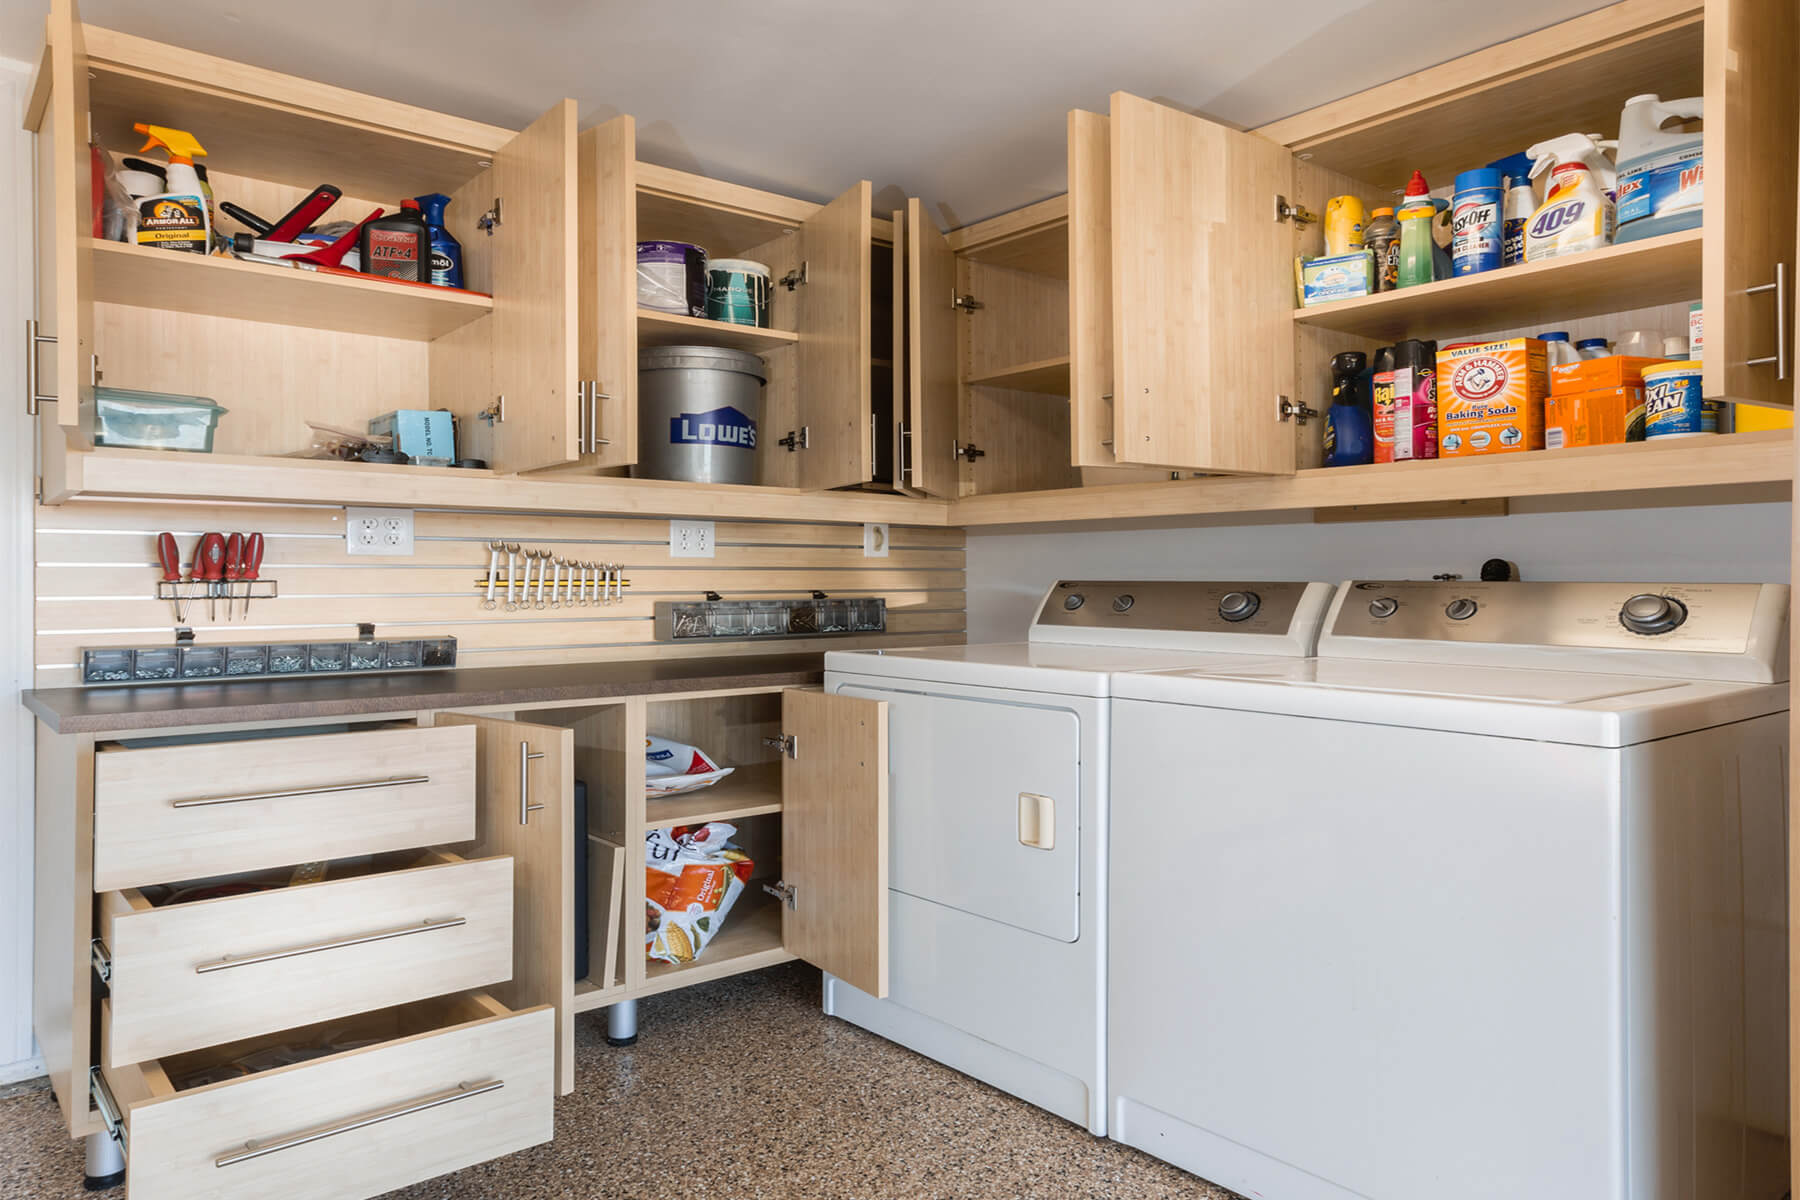 This very functional laundry room offers a wide choice of storage and cabinets from the ceiling wood cabinets down to the floor cabinets.